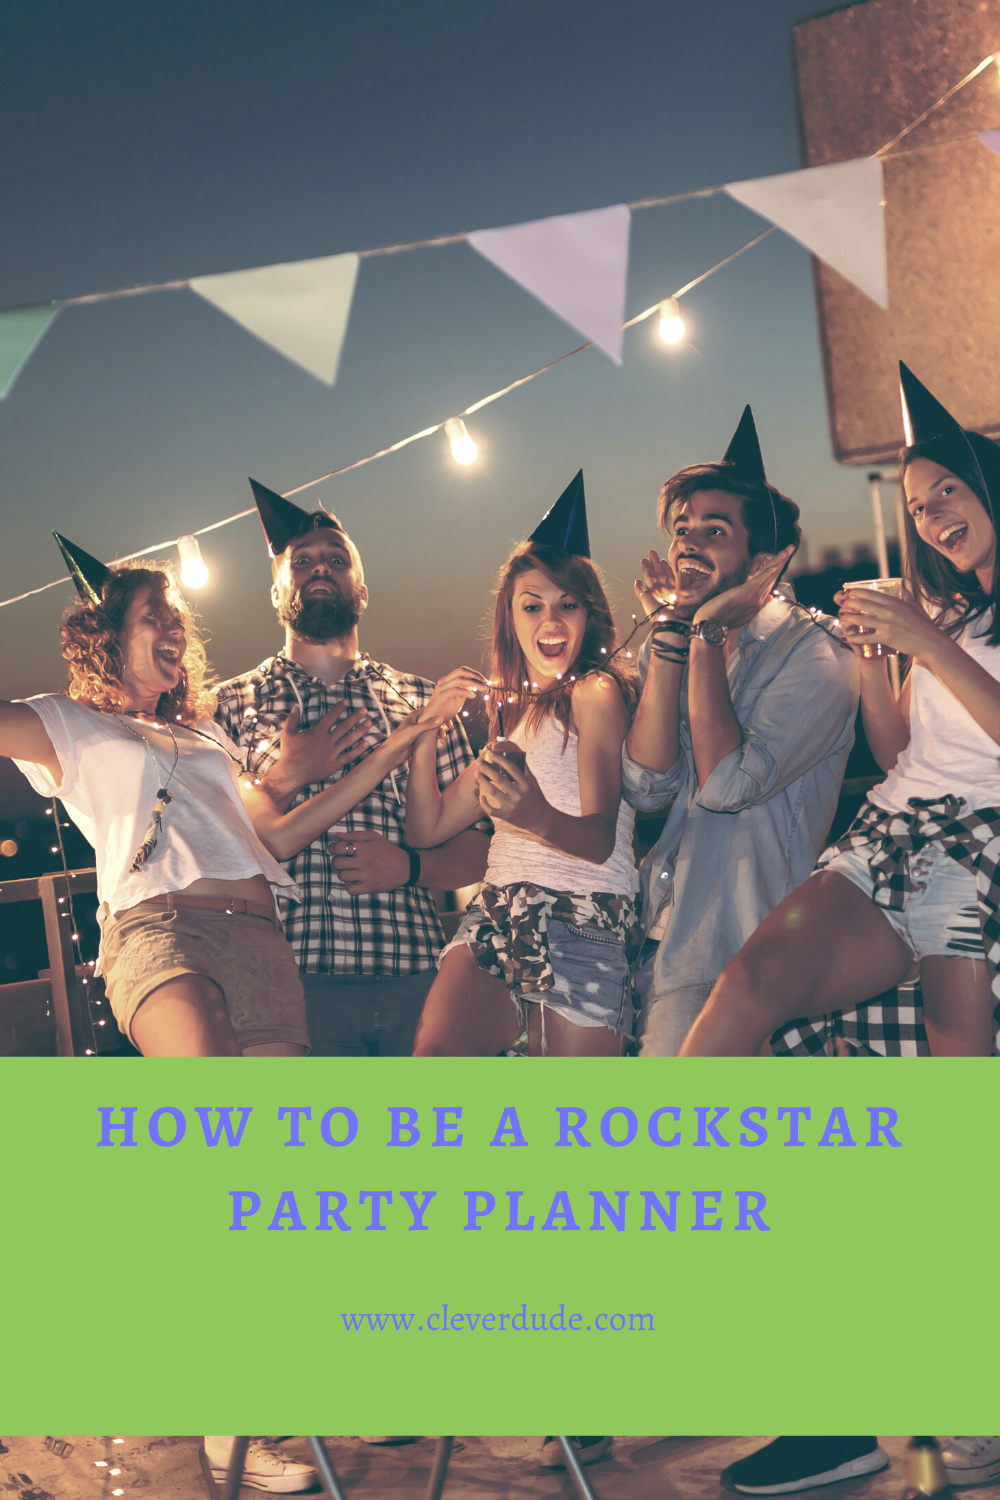 How To Be A Rockstar Party Planner